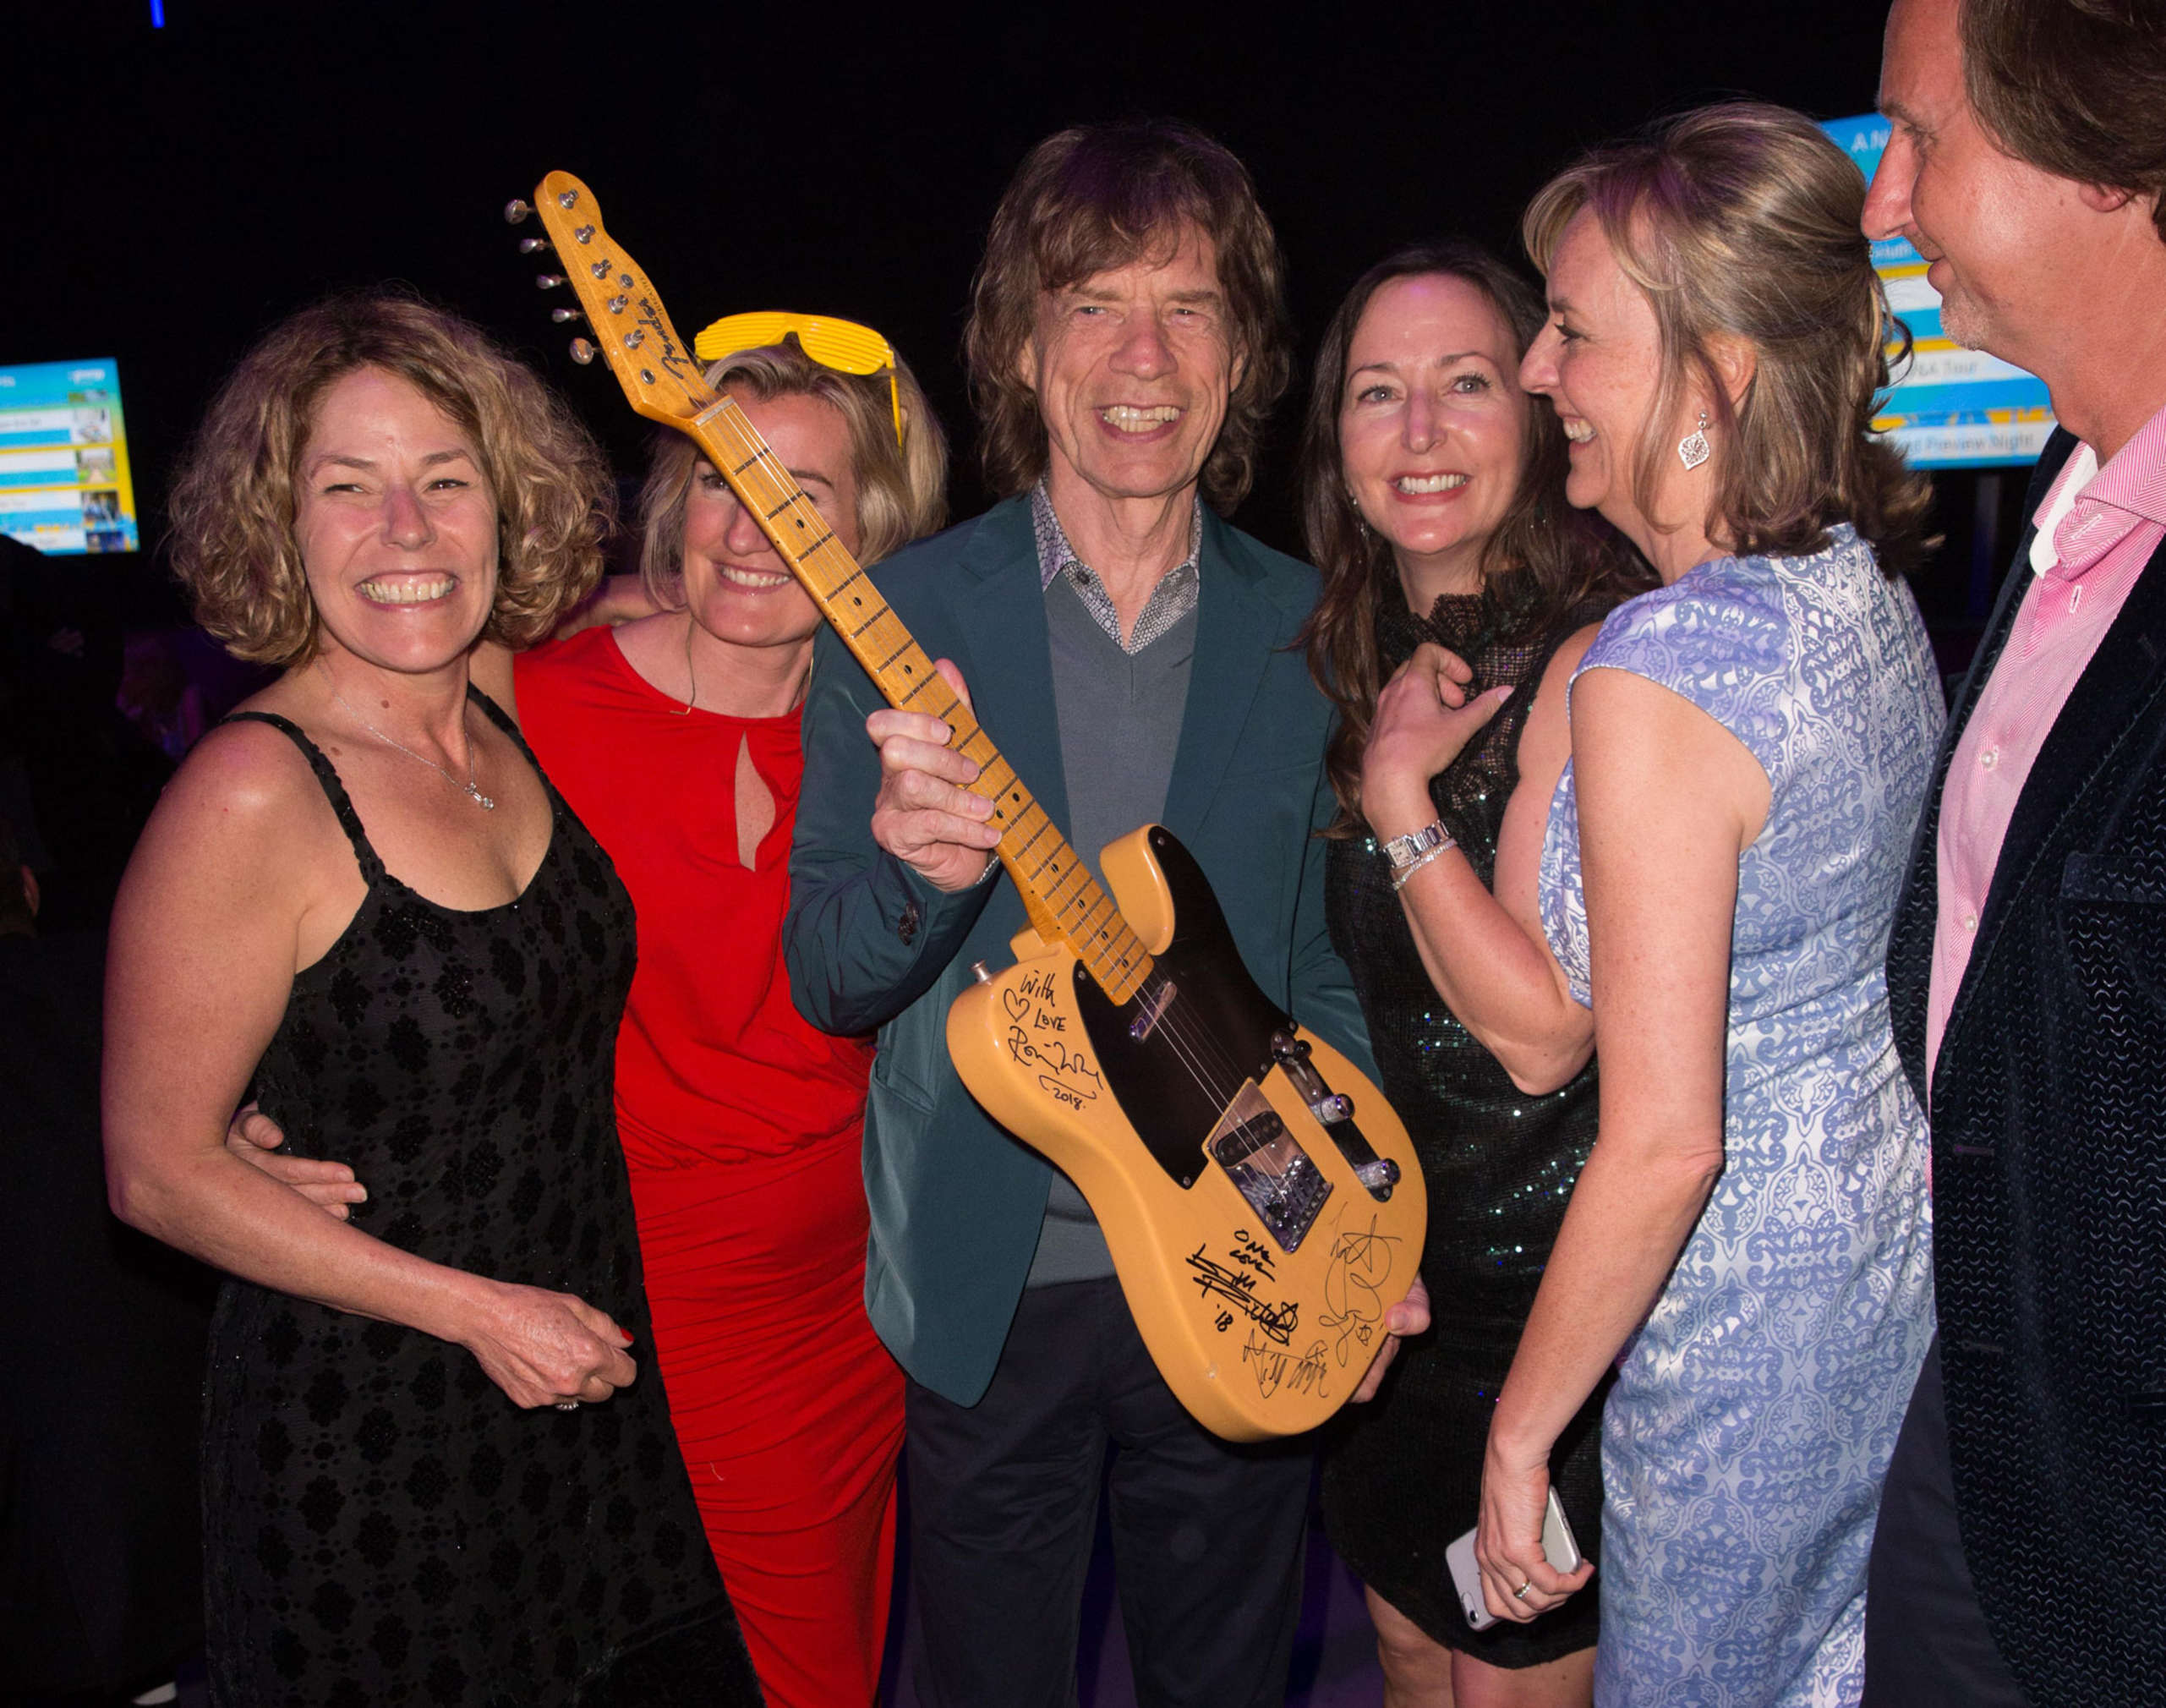 Sir Mick Jagger of the Rolling Stones with the guitar he auctioned for a staggering £70,000